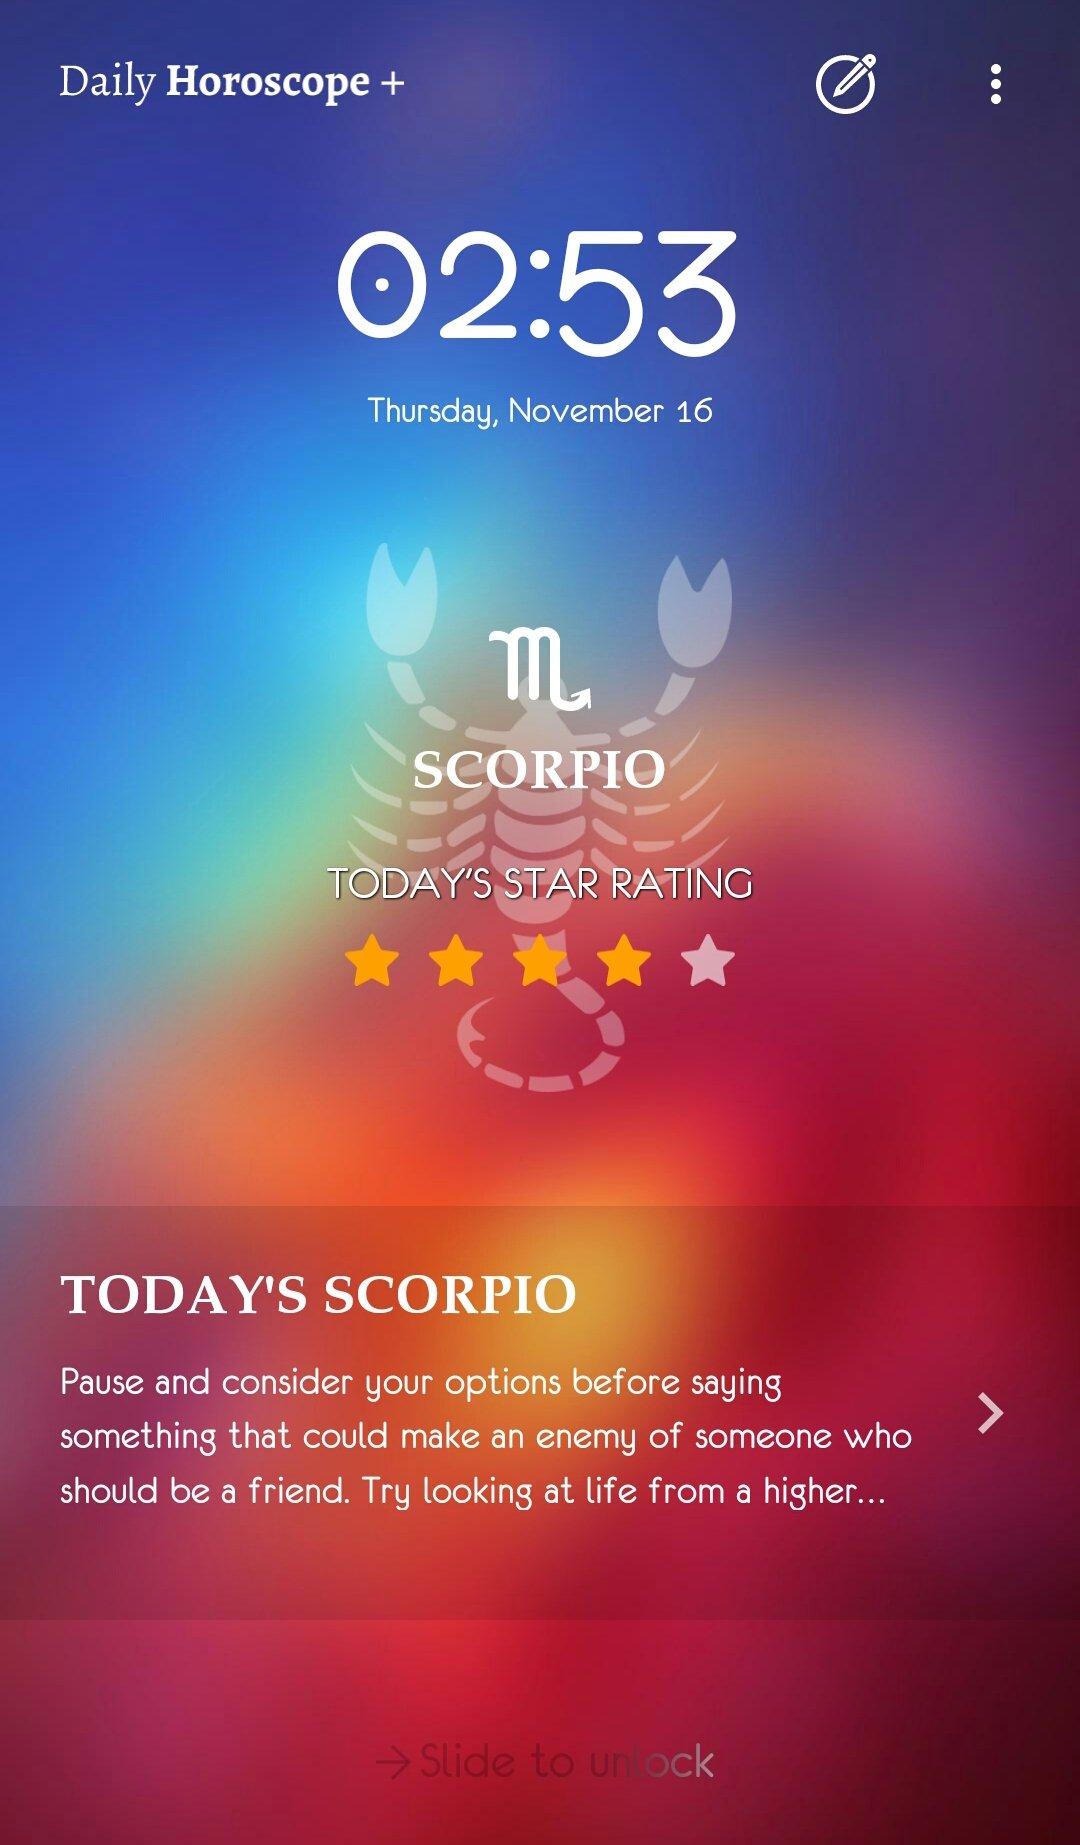 Daily Horoscope Plus 2018 1 4 10 - Download for Android APK Free